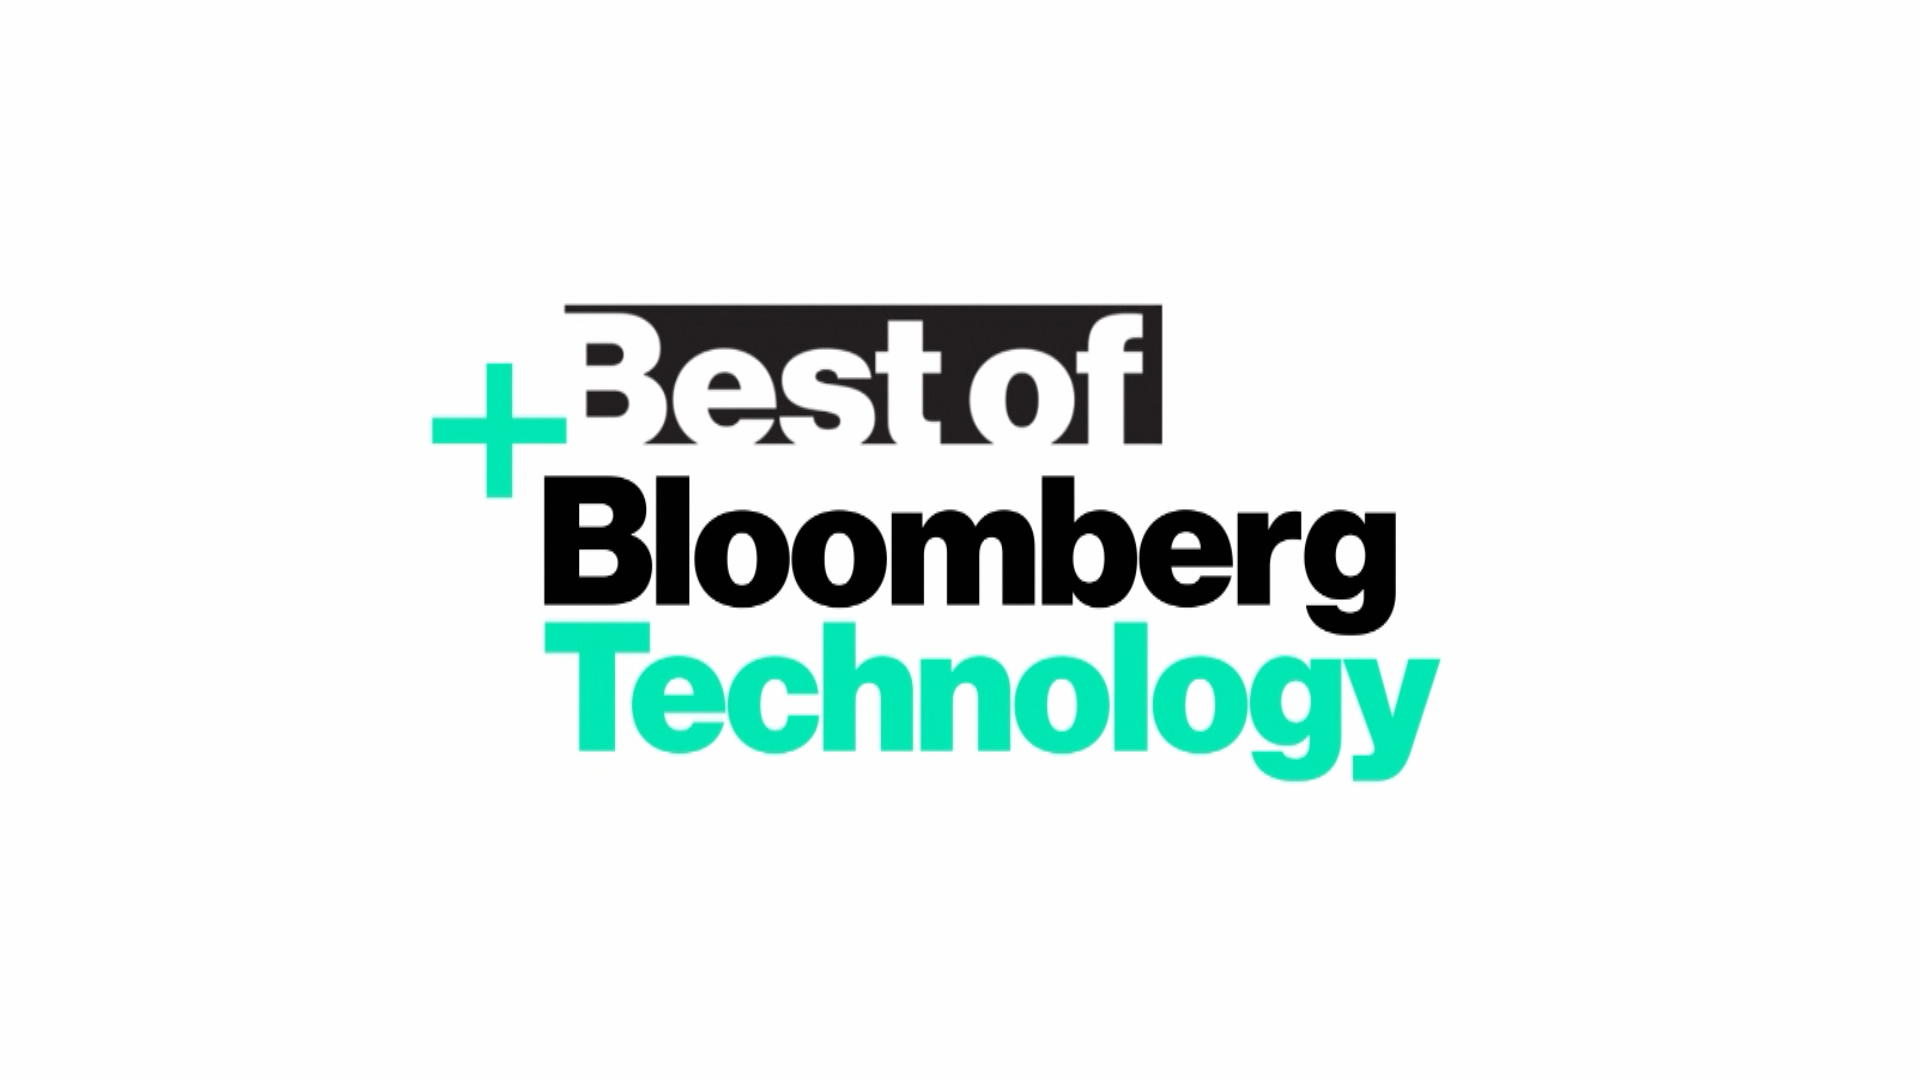 Best of Bloomberg Technology - Week of 10/18/19